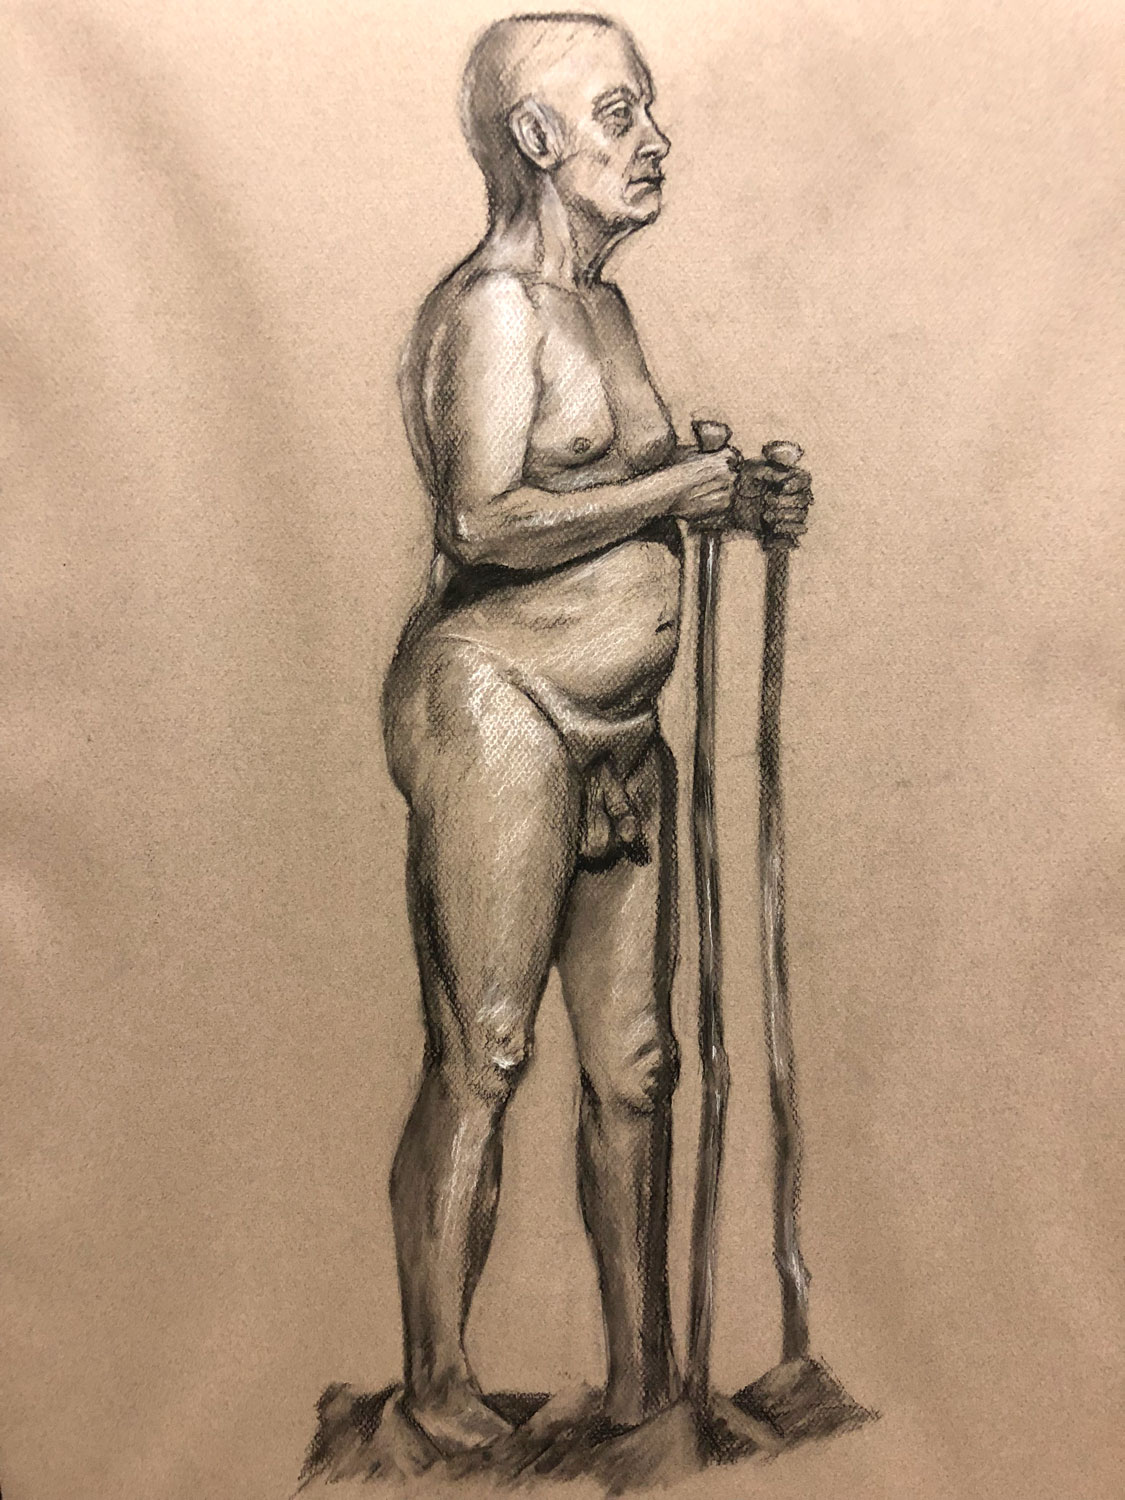 UW-Whitewater • 10/25/17 • Full figure in charcoal